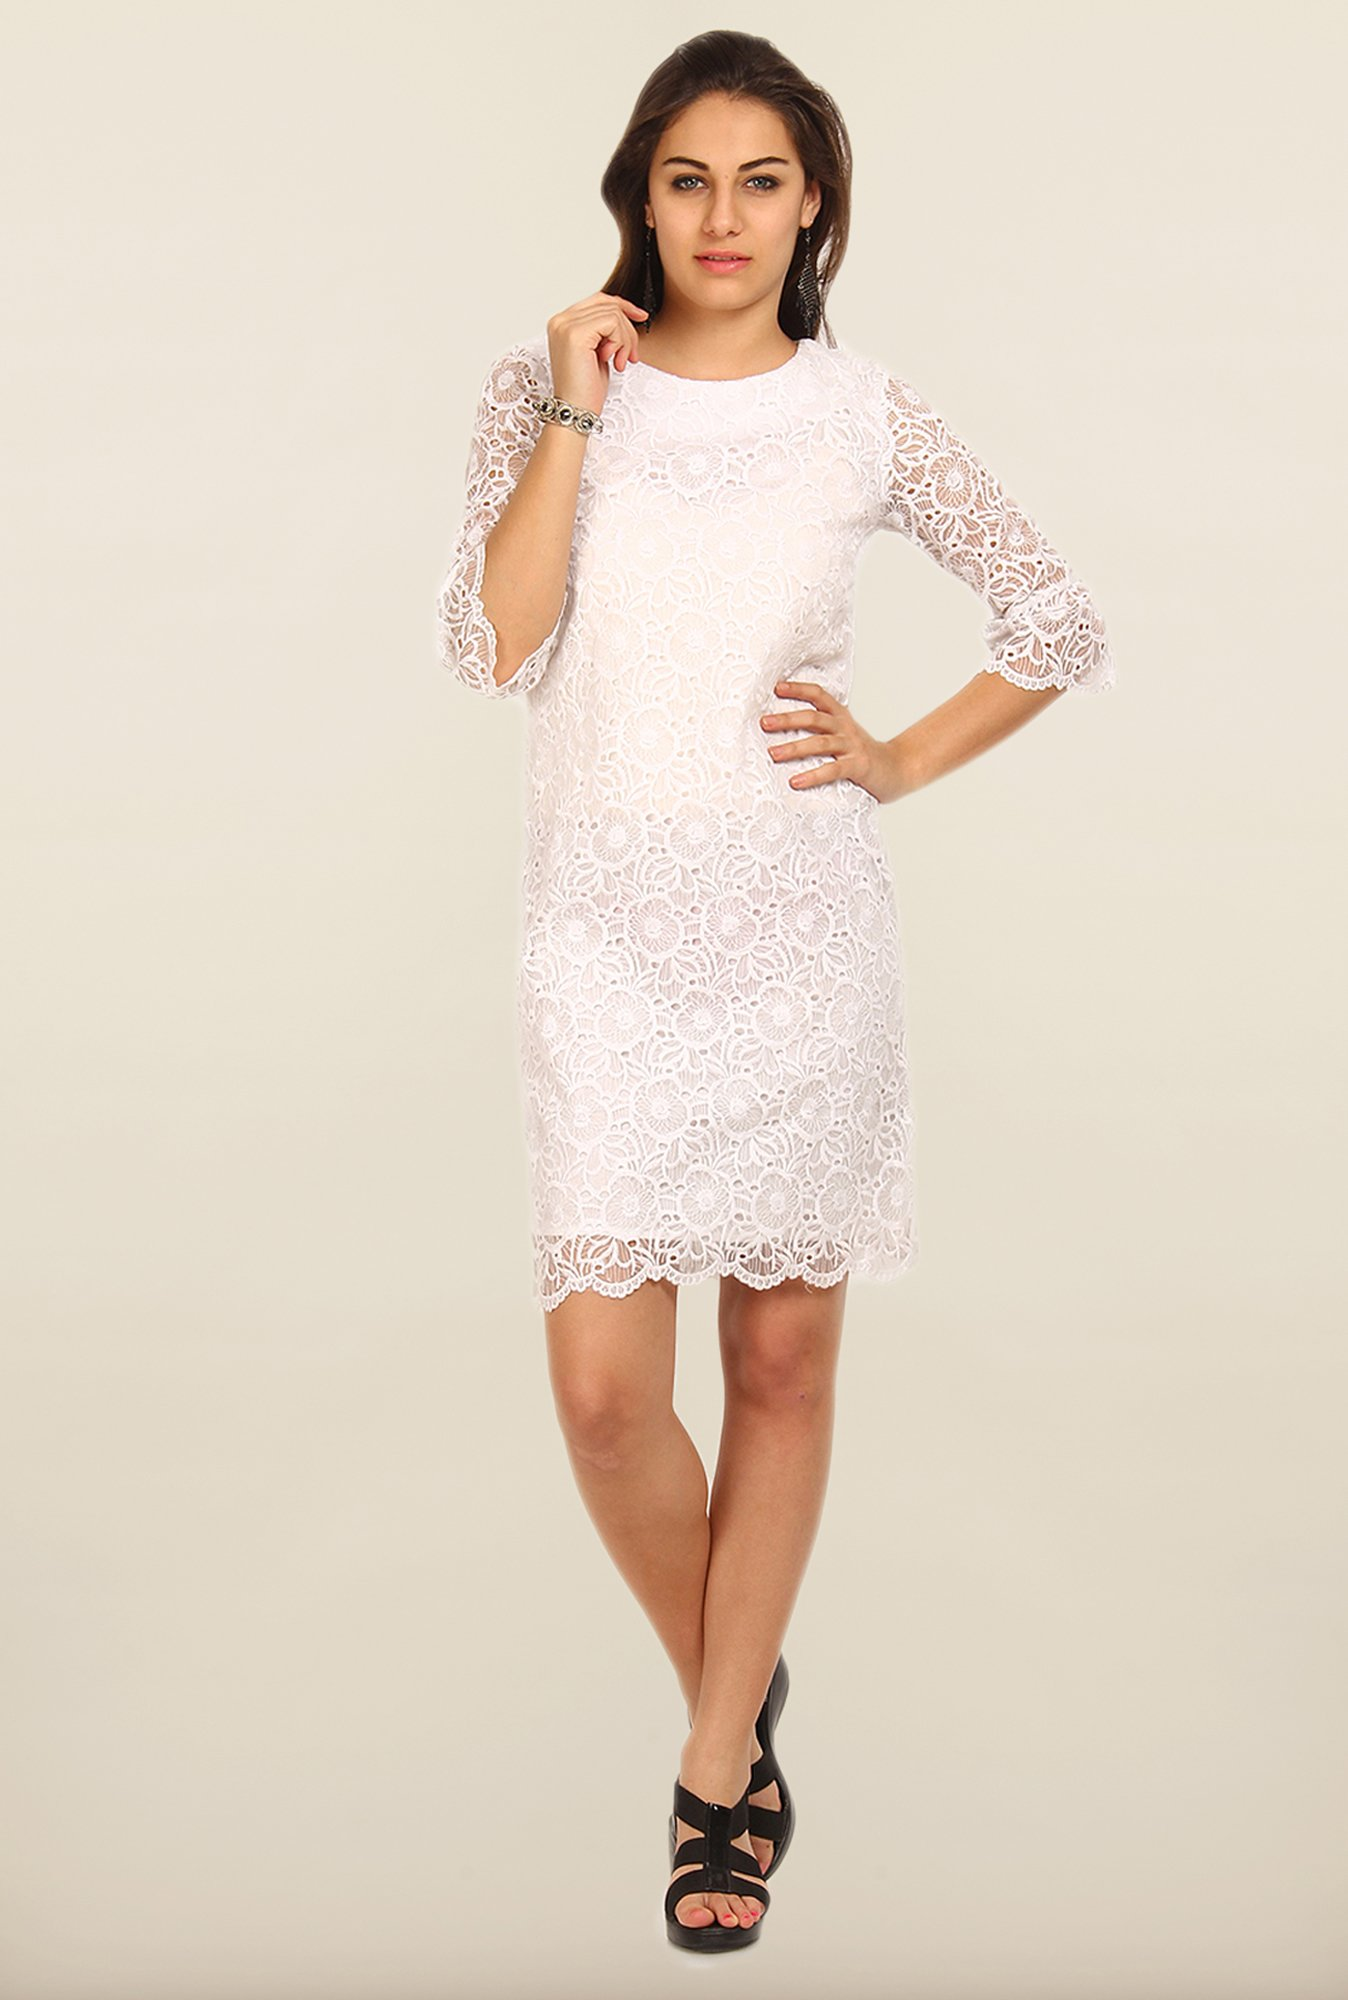 Avirate White Lace Shift Dress